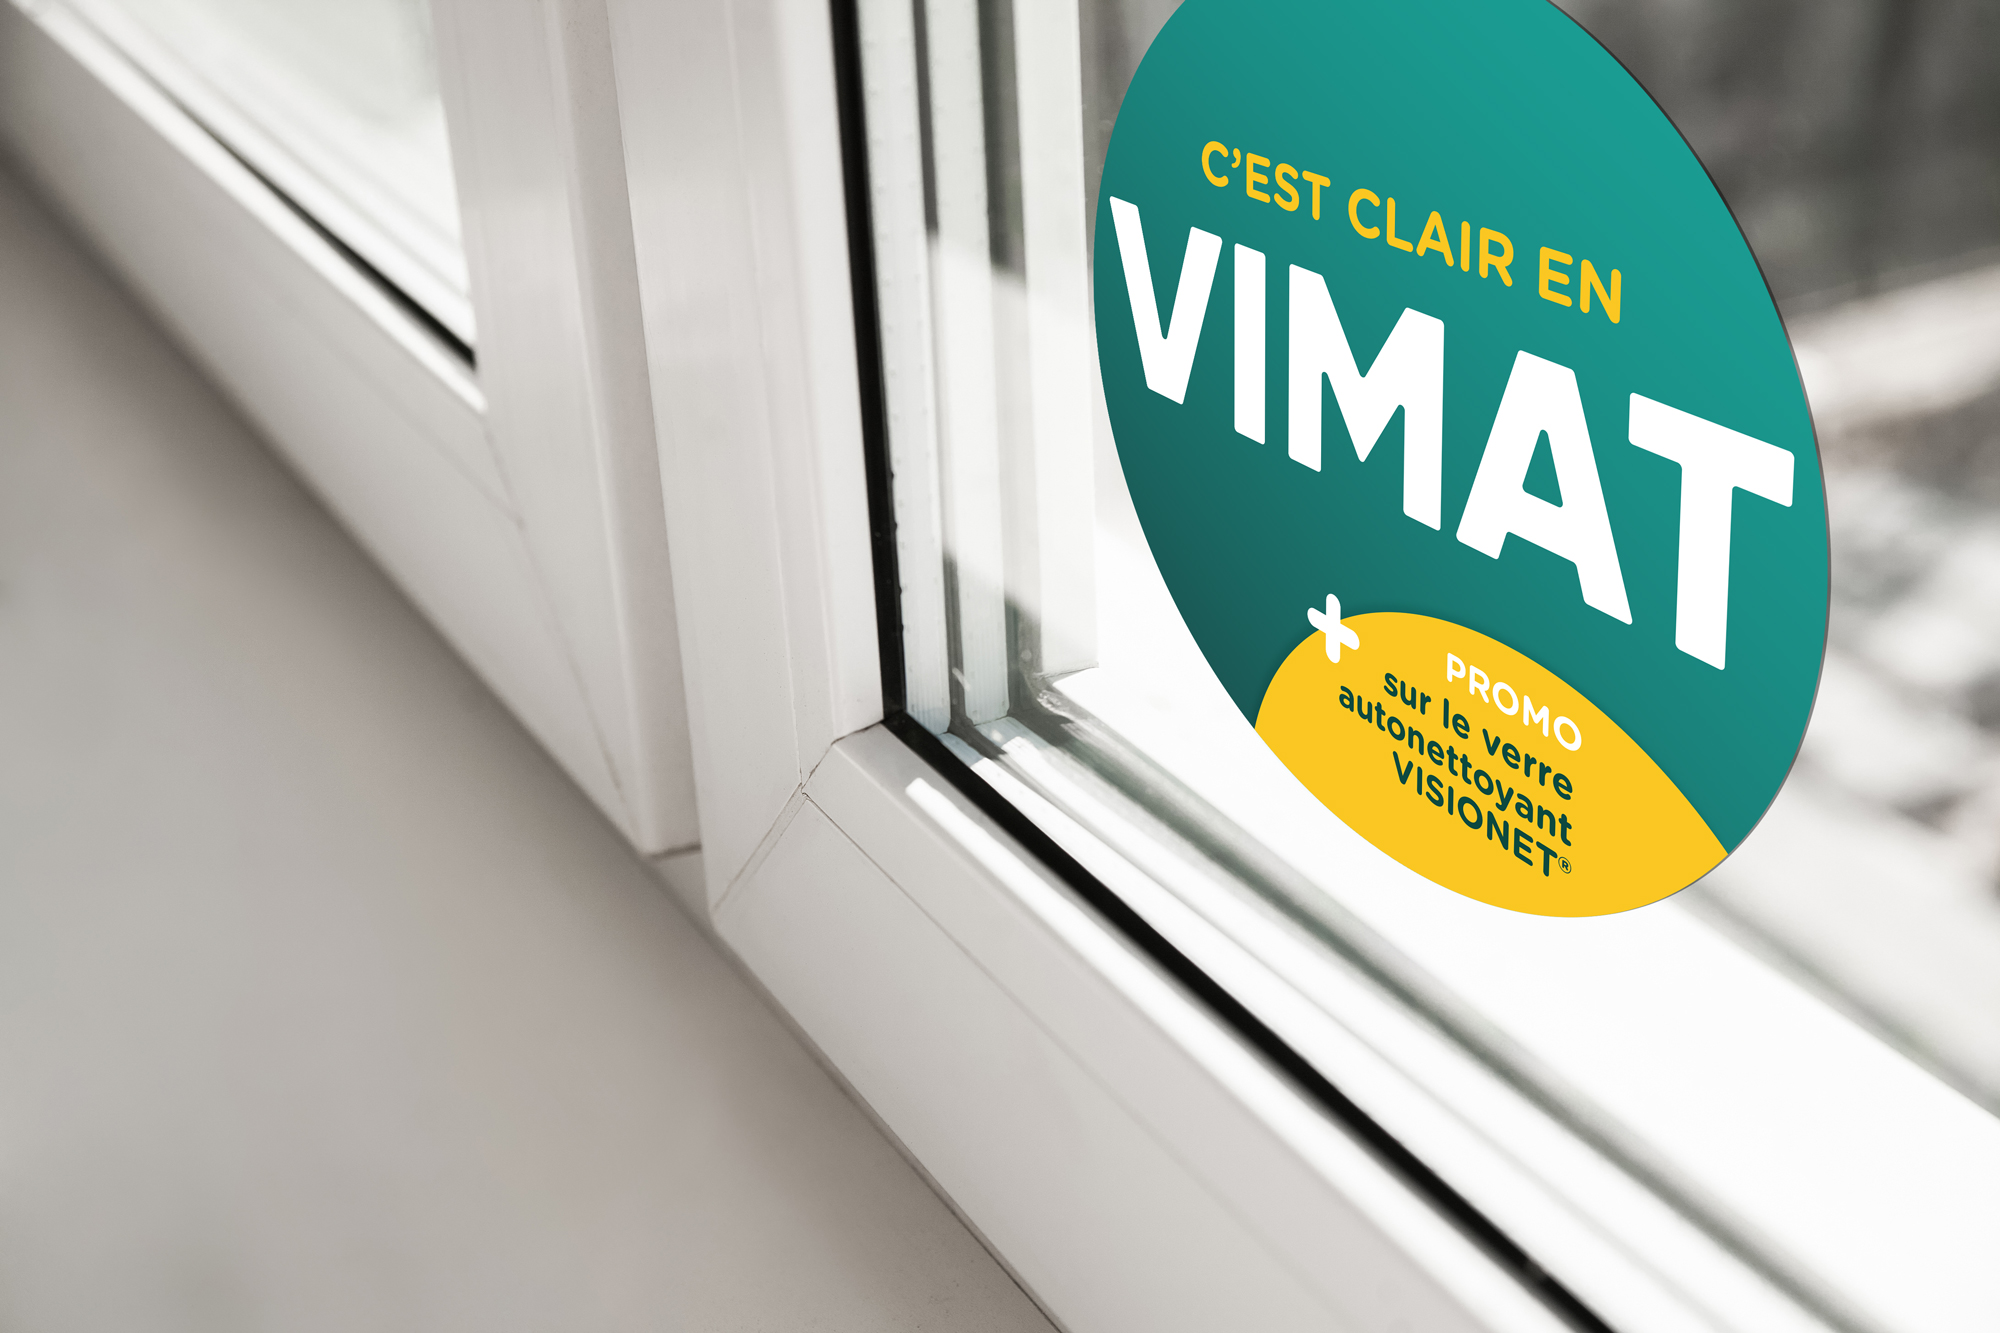 VIMAT DOORS AND WINDOWS